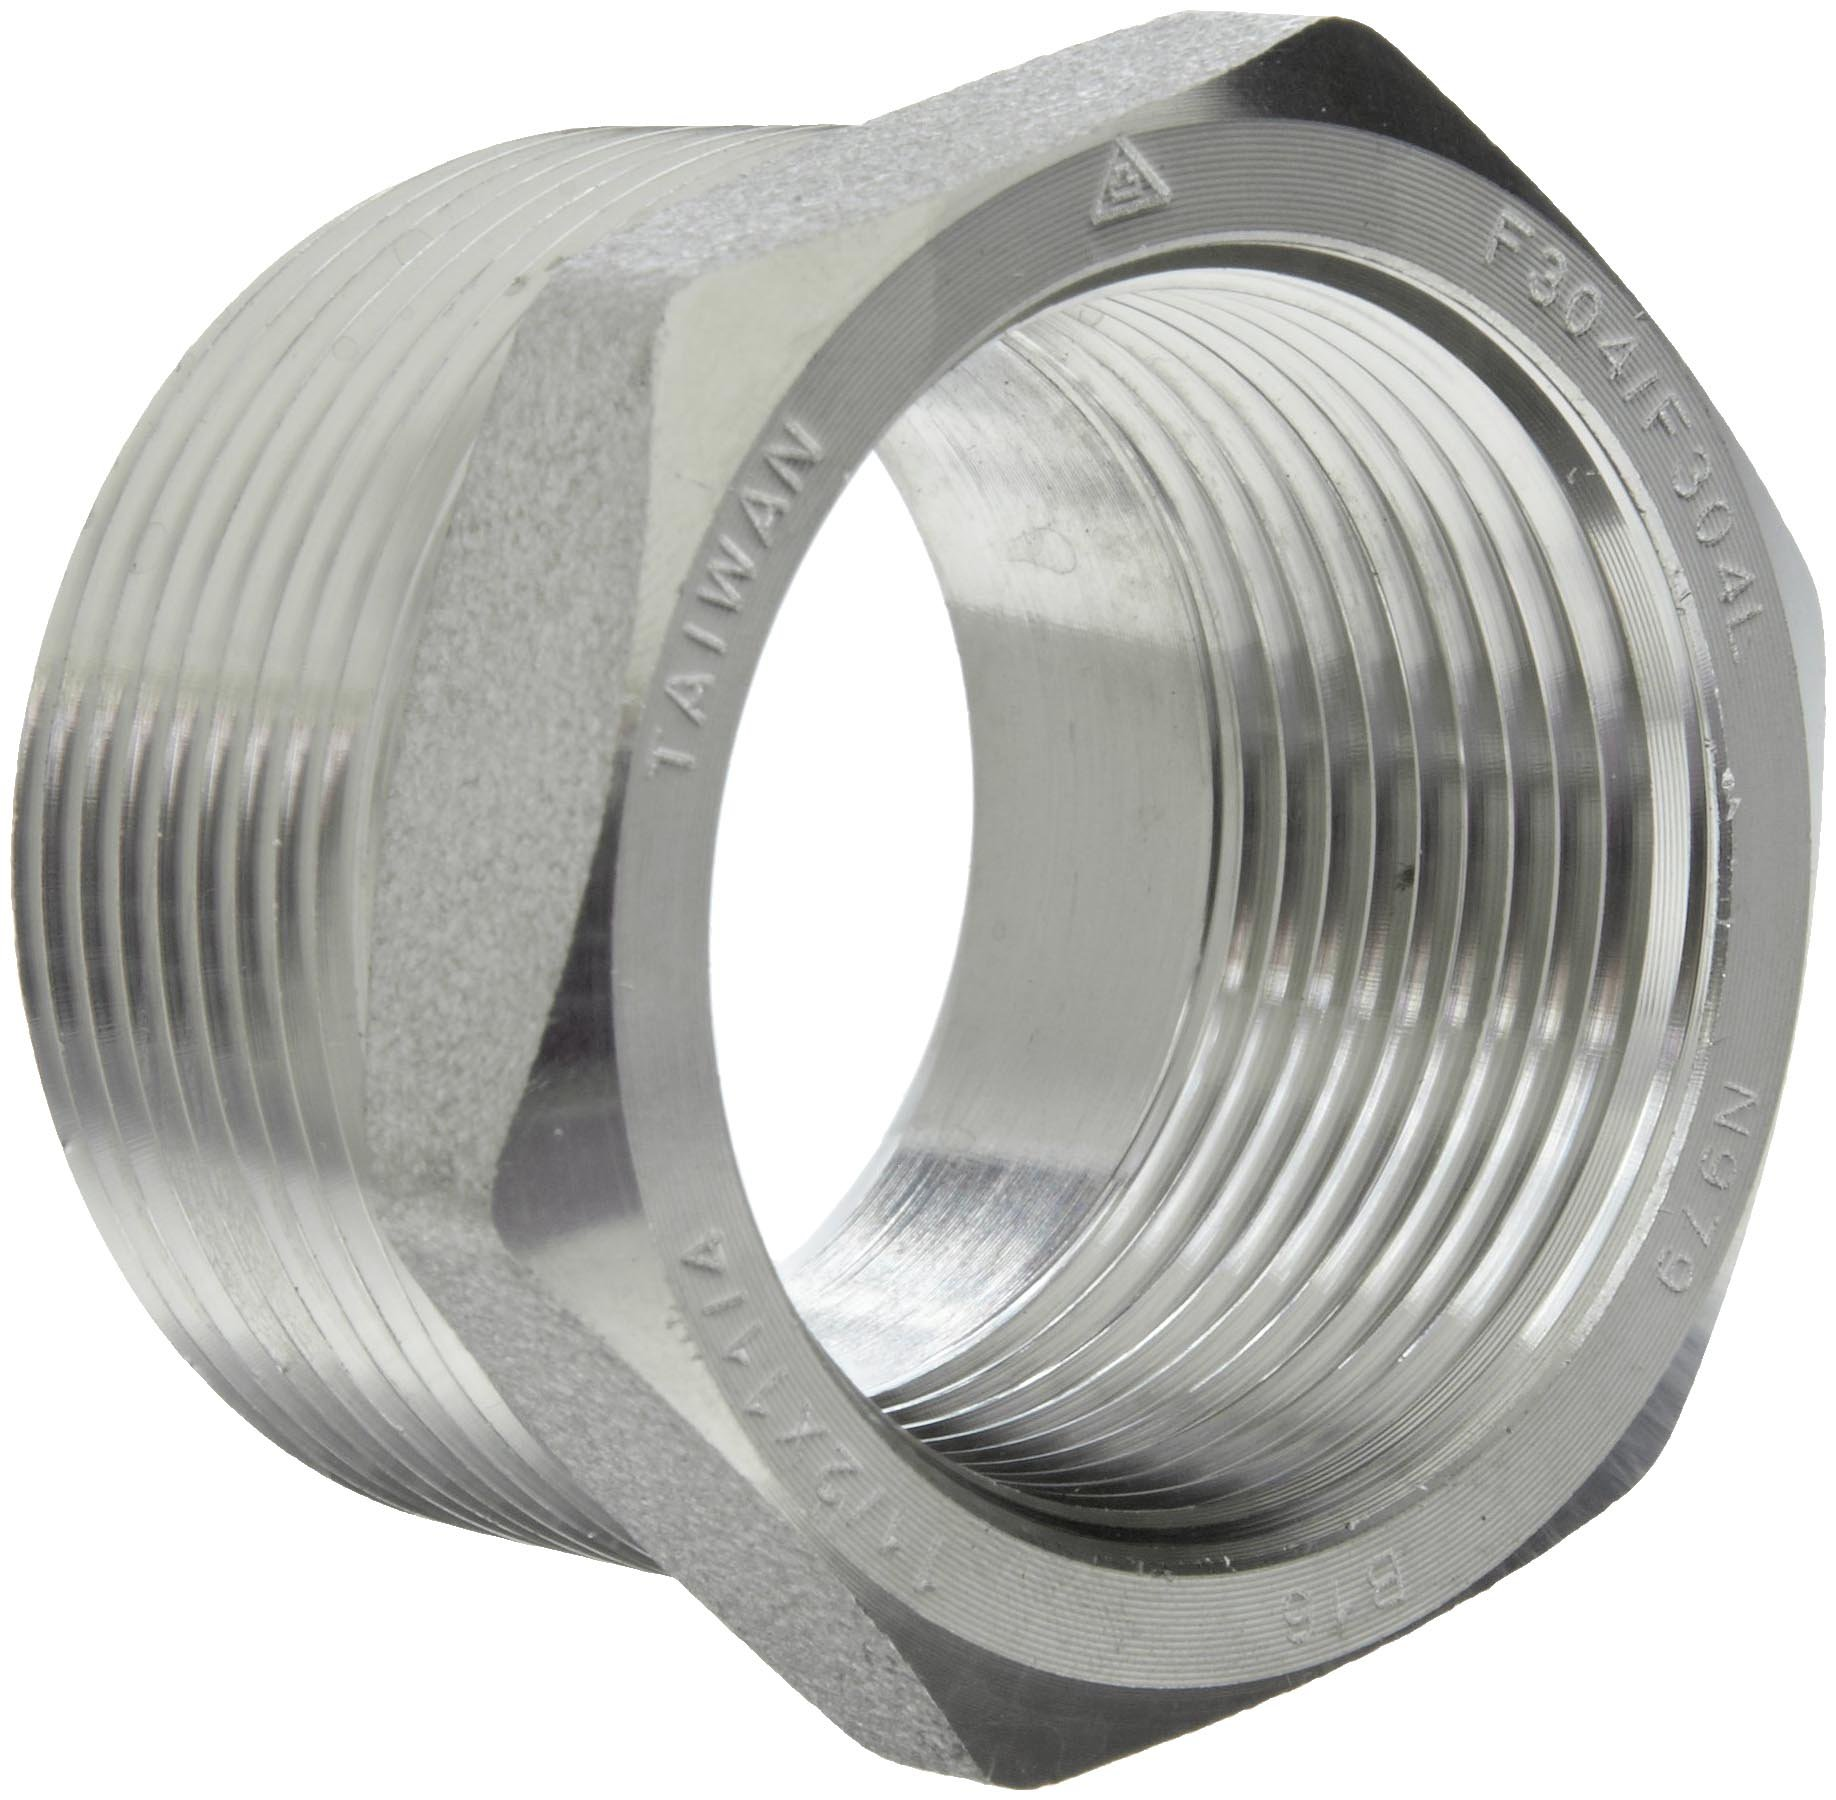 L forged stainless steel pipe fitting bushing class